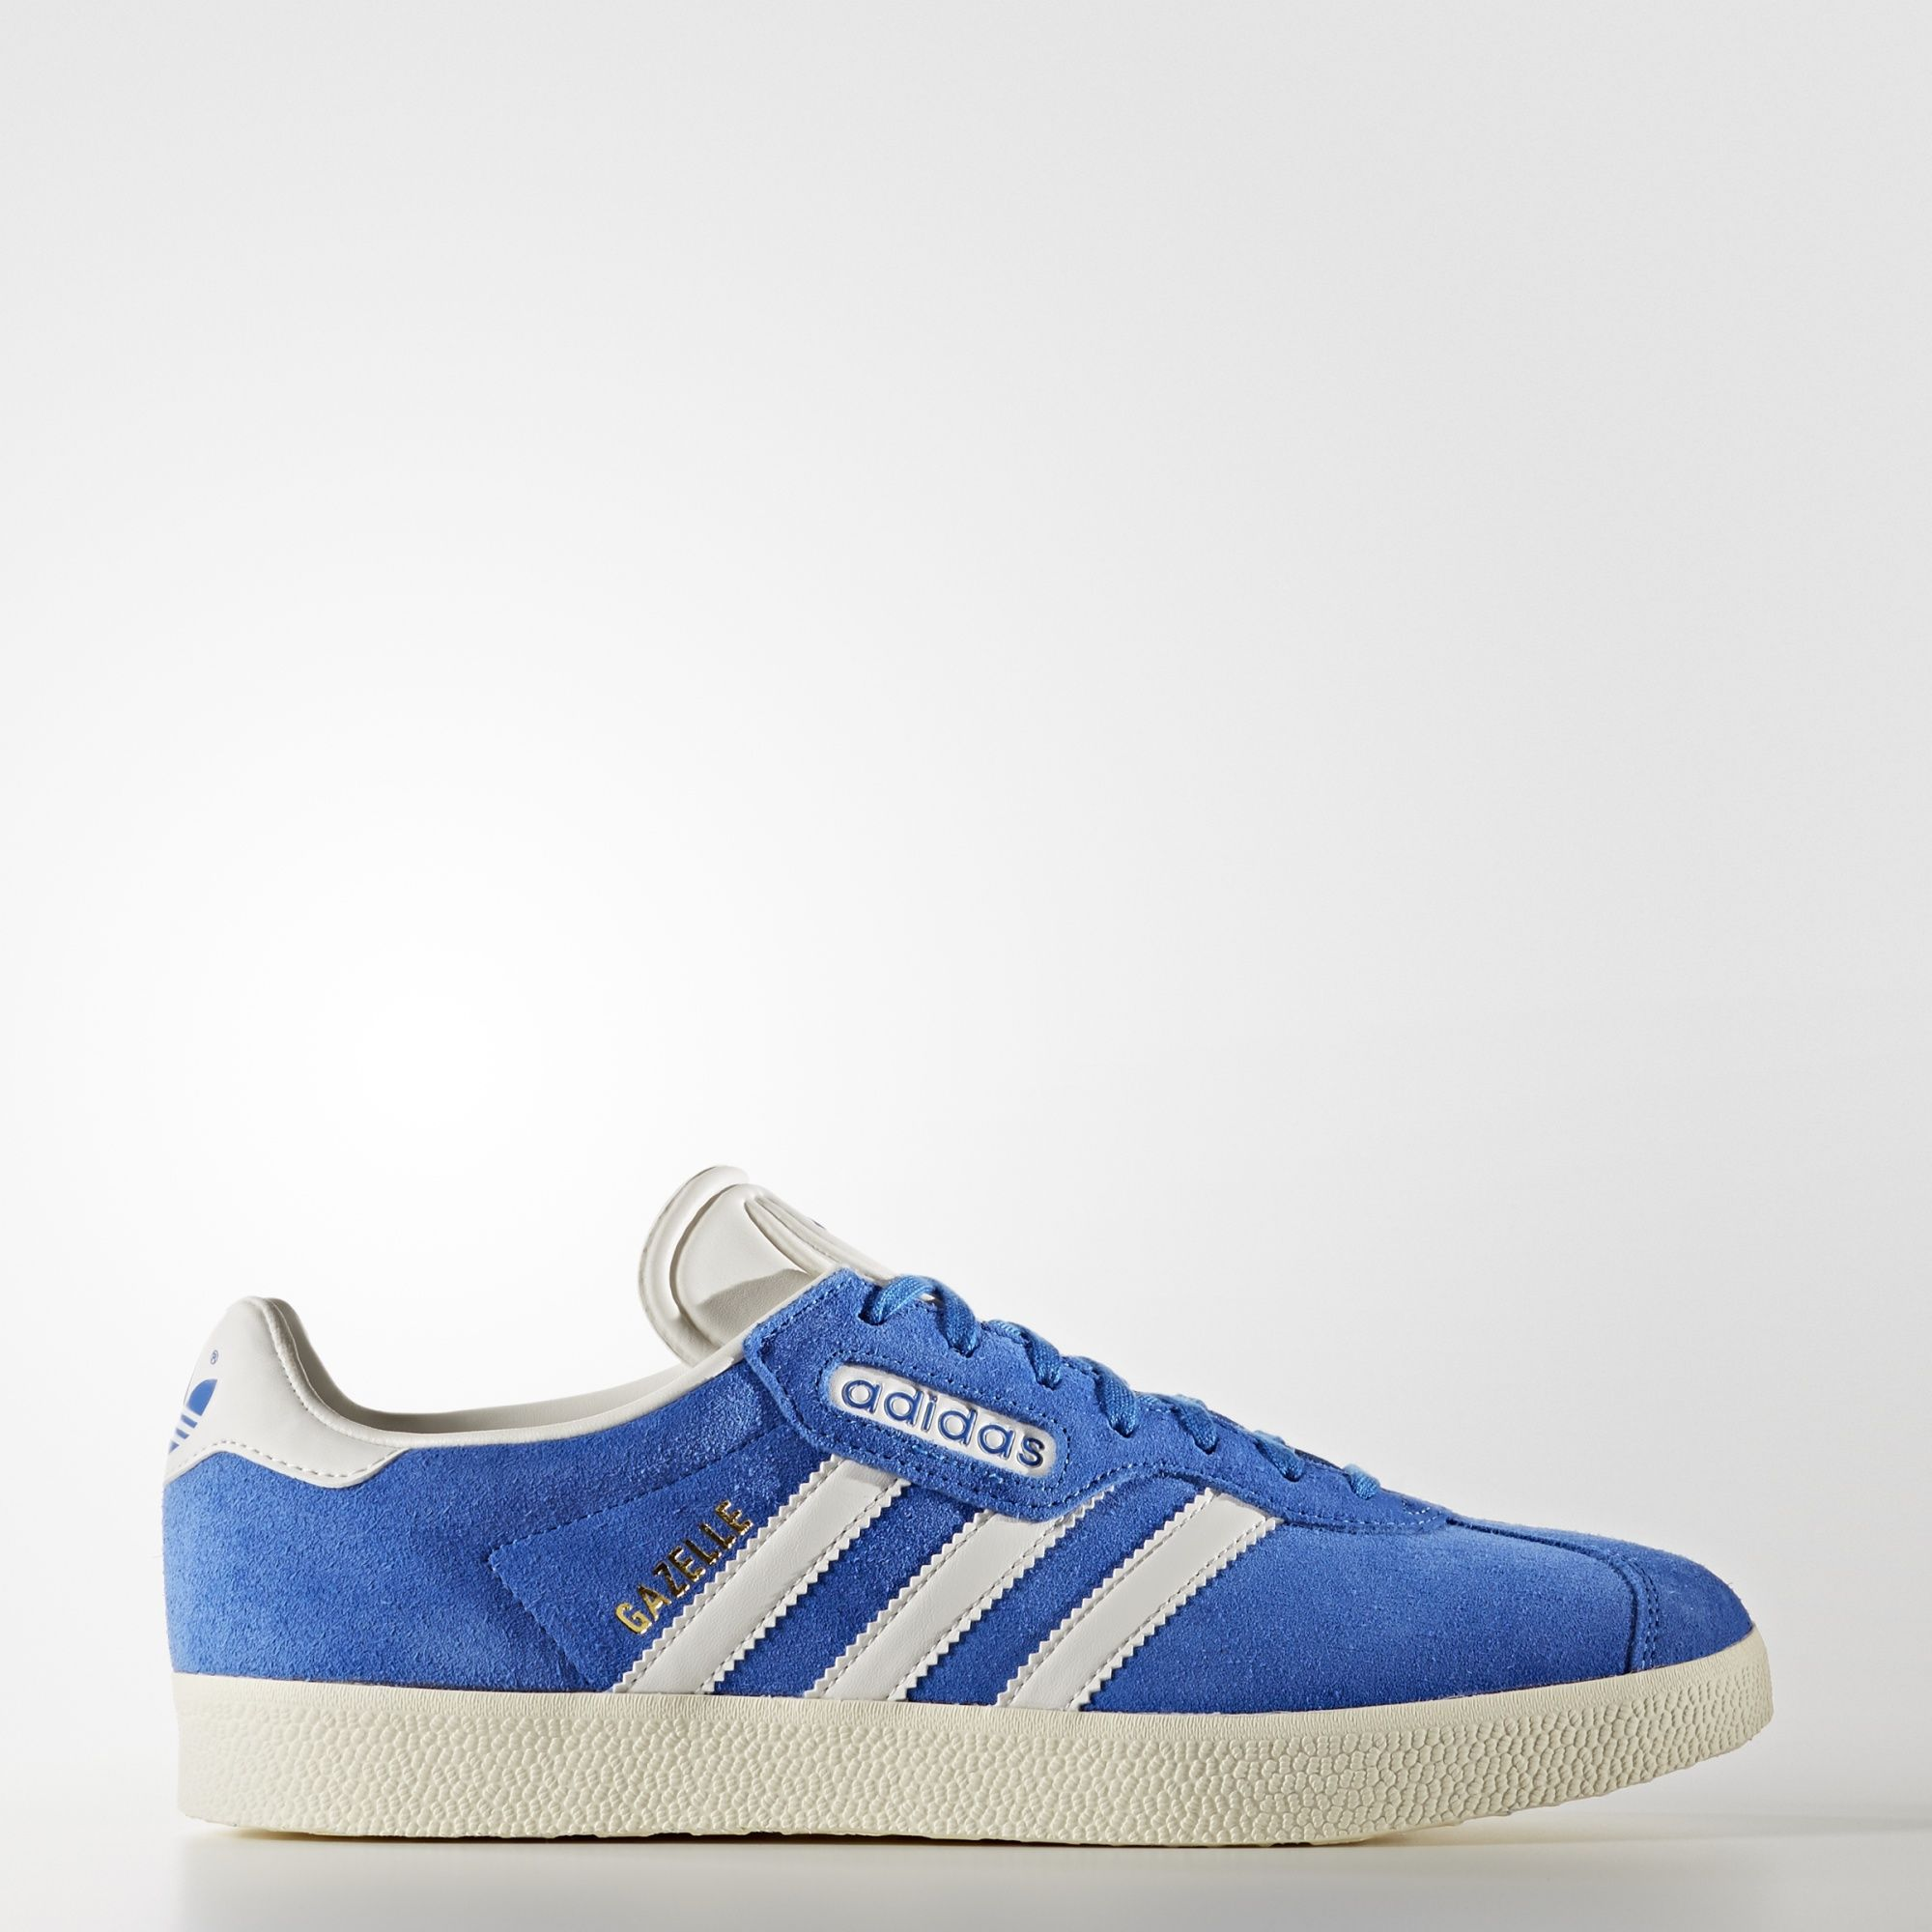 adidas gazelle women red adidas shoes women sale